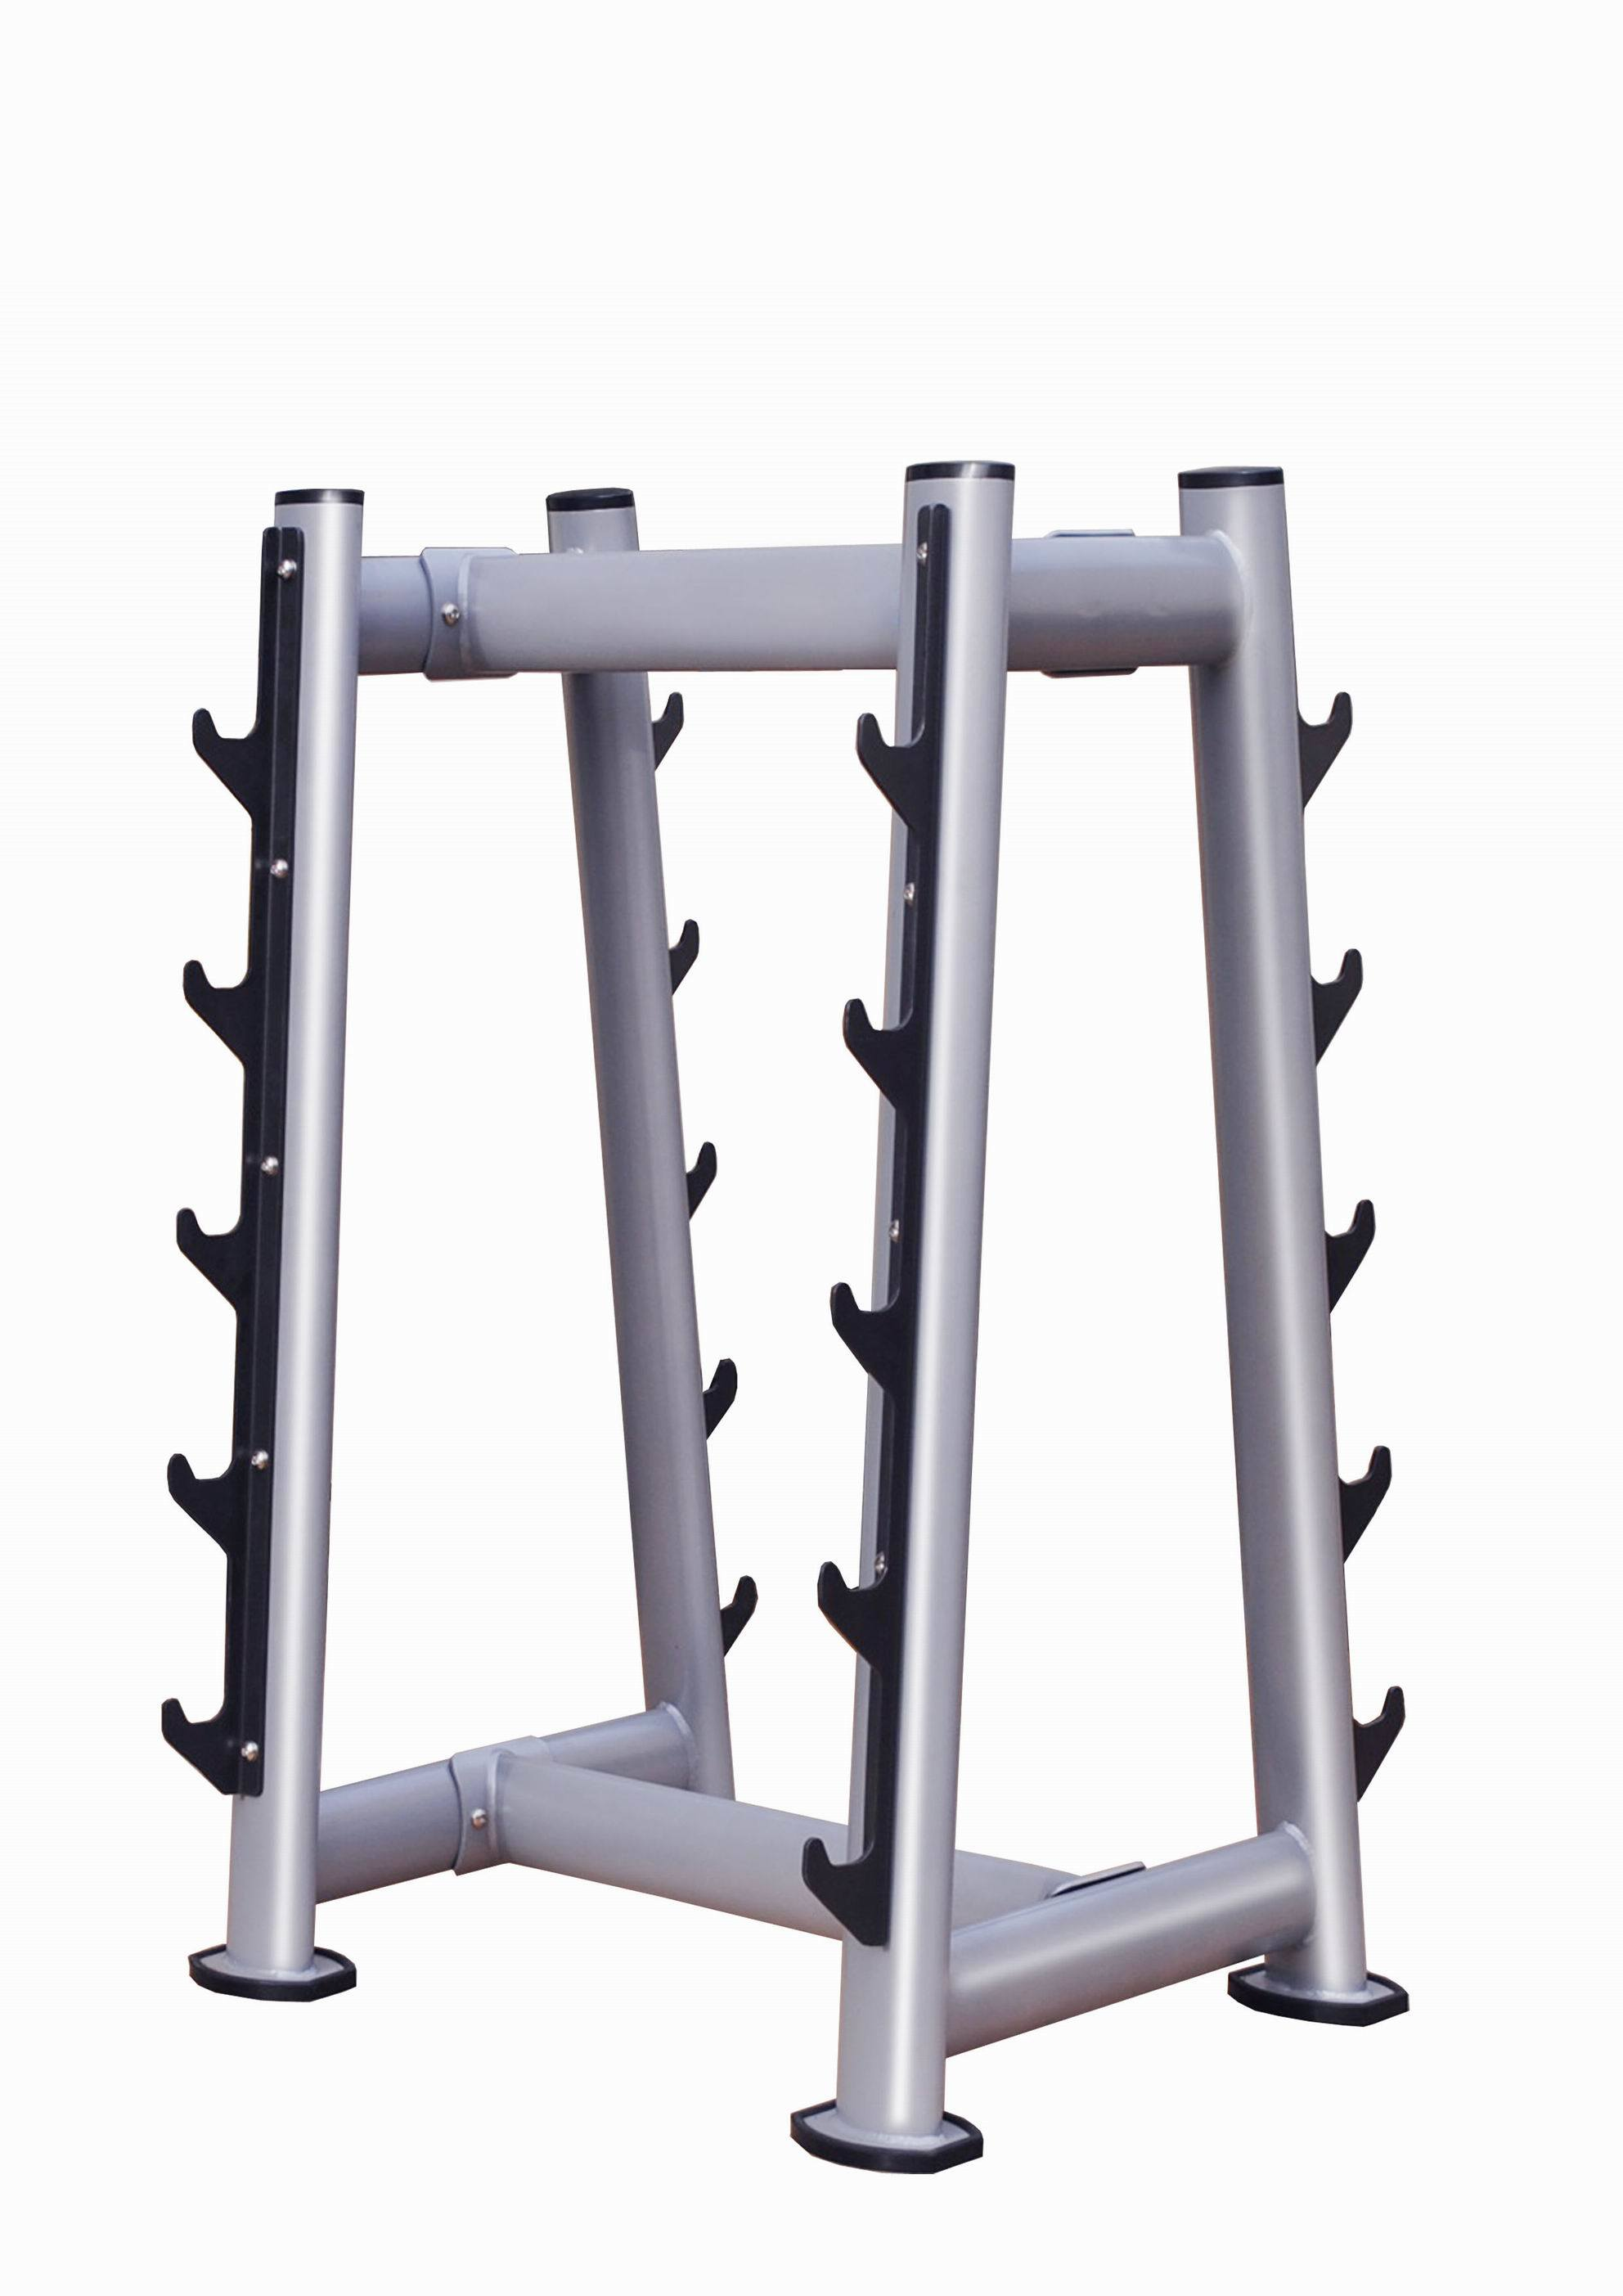 tree plate rack barbell olympic stand weight discs plates holder bar for storage